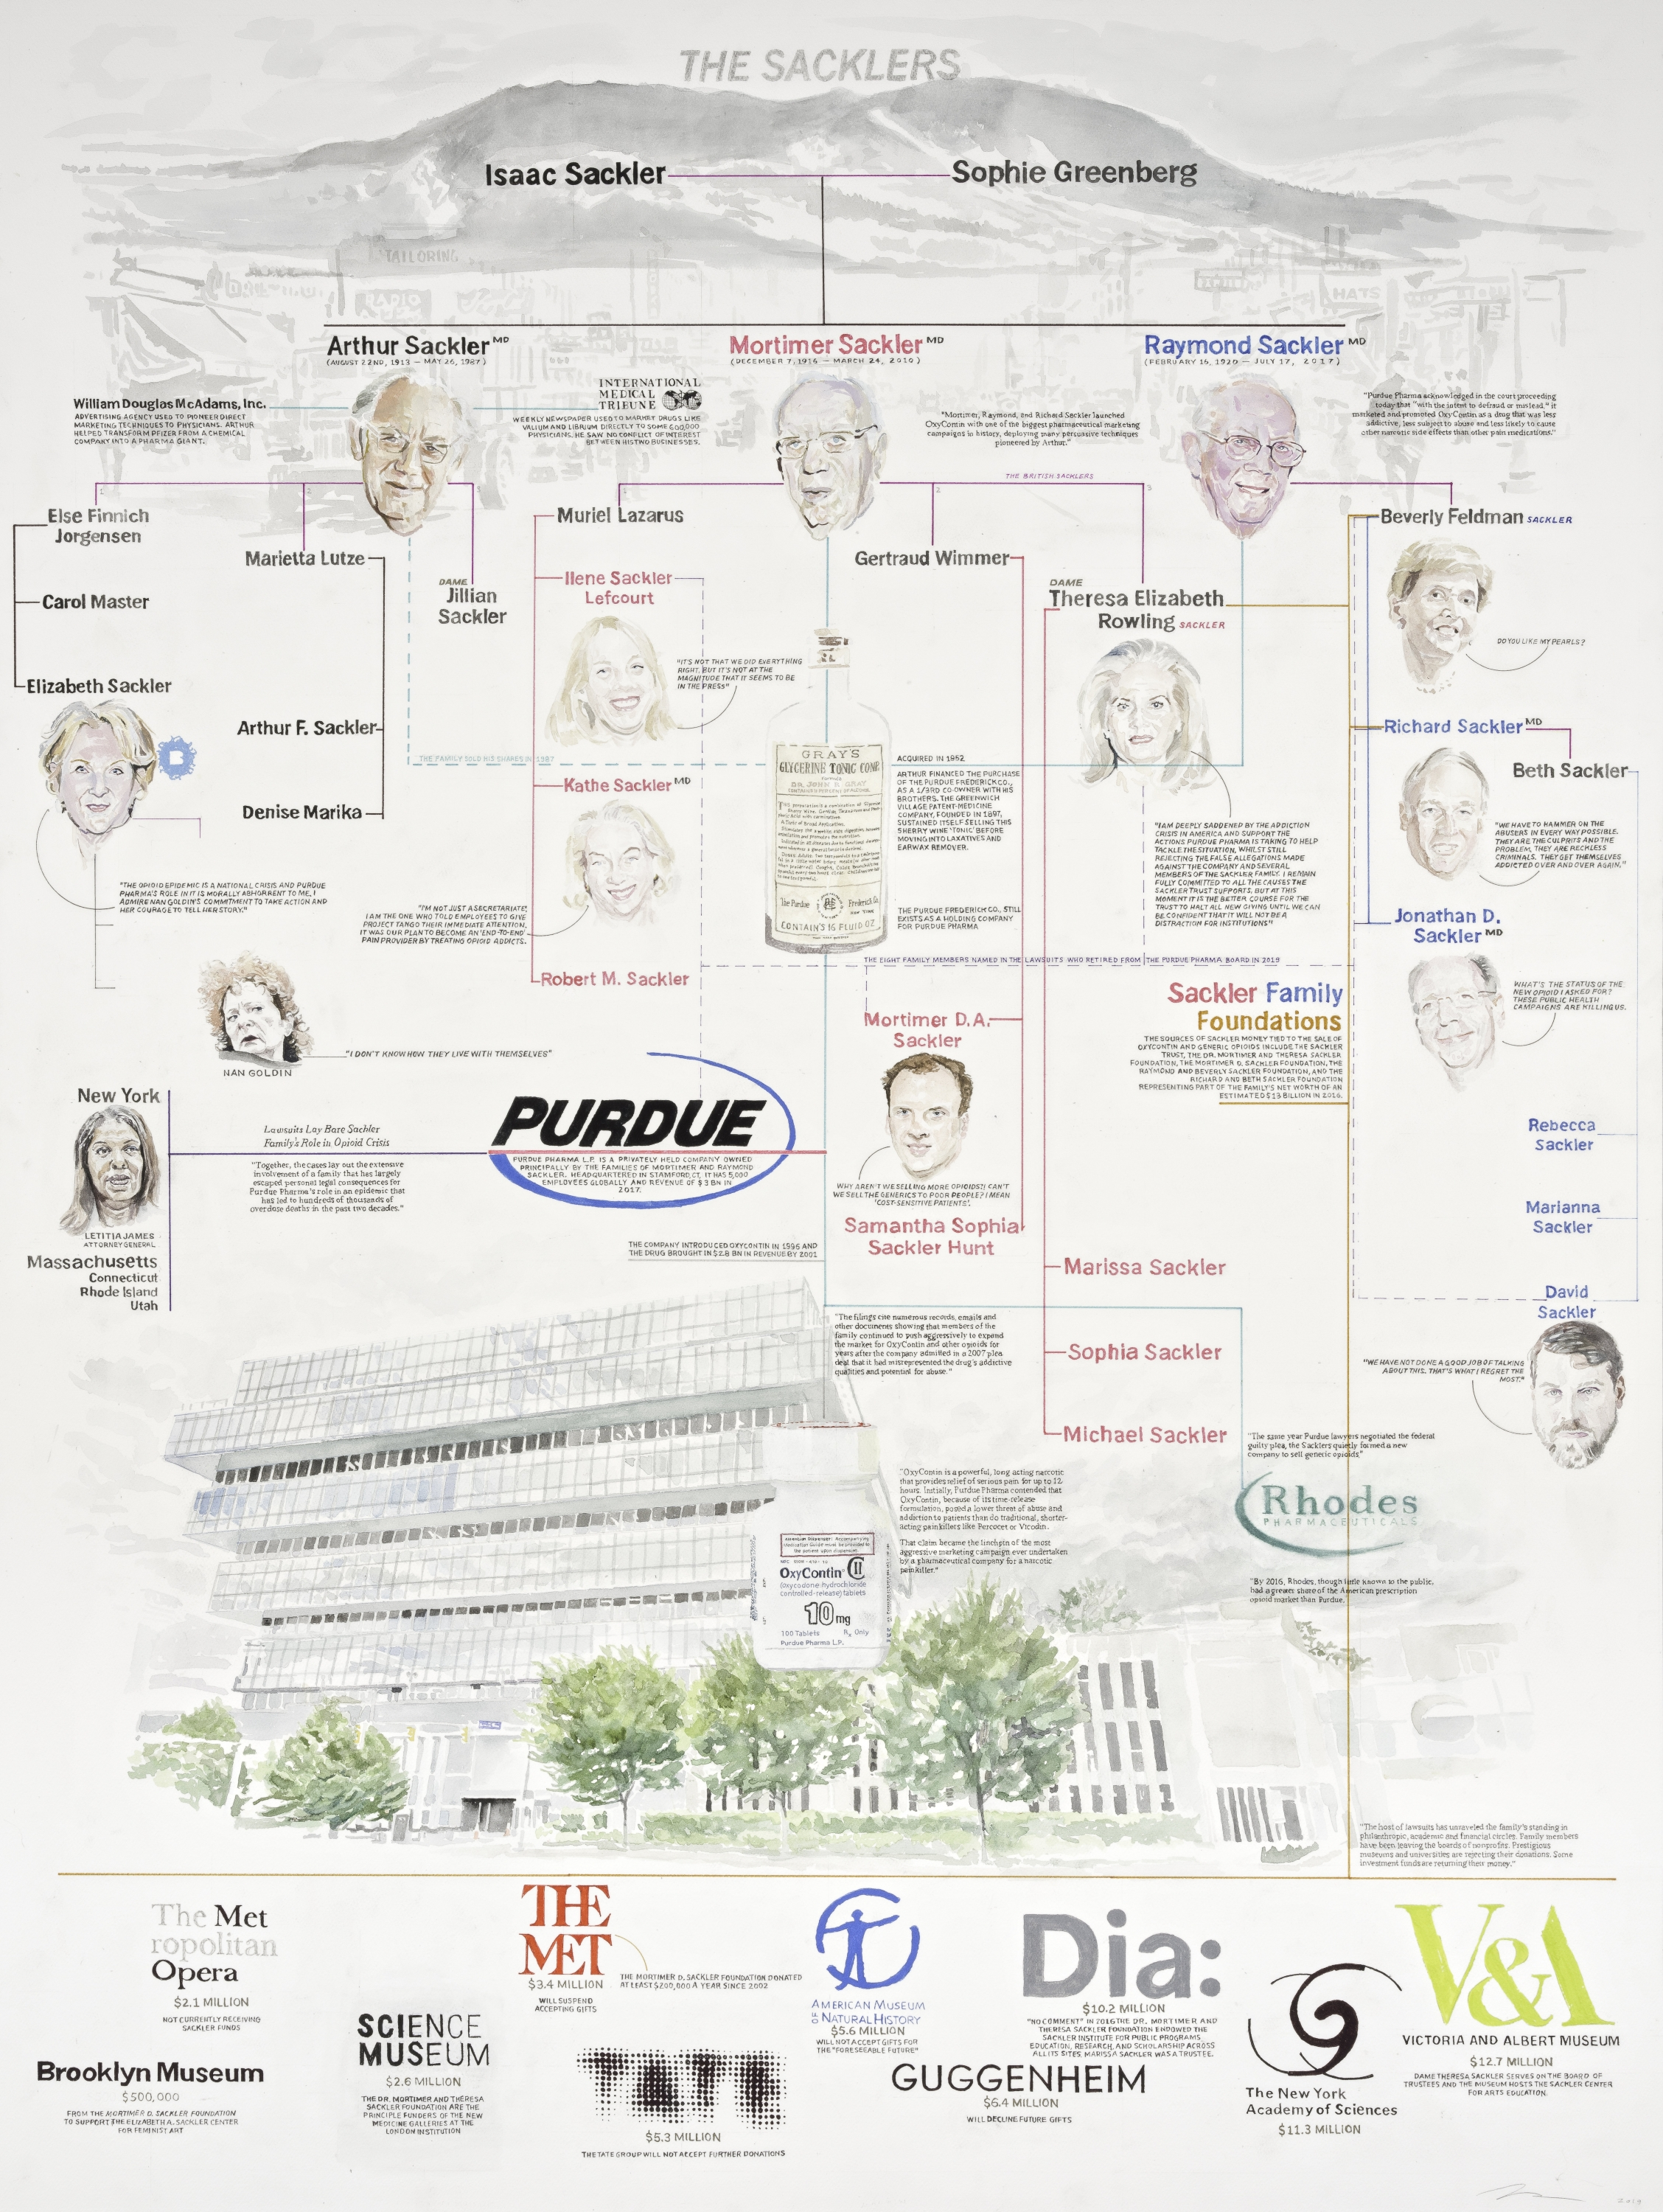 The Sacklers (Family Tree)